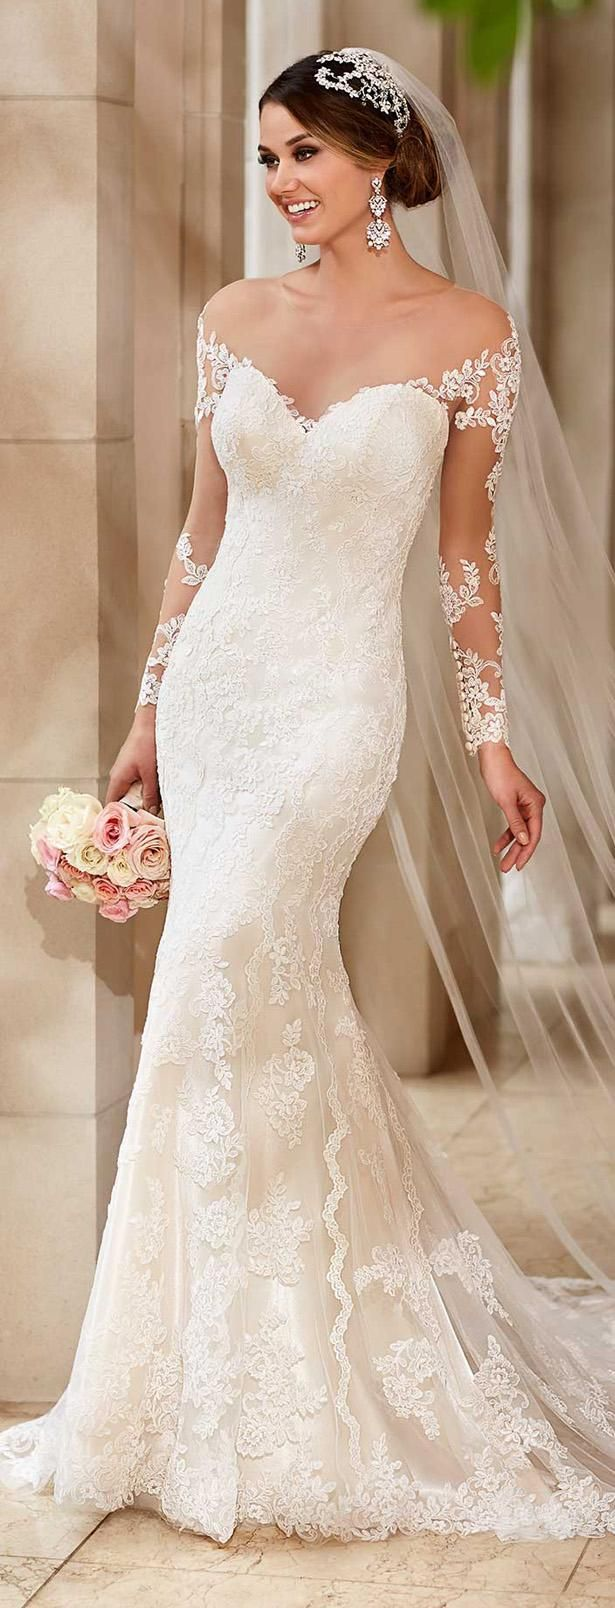 Wedding Dress By Stella York Spring 2016 Soft Ivory Sweetheart Neckline Lace Off The Shoulder Mermaid Style